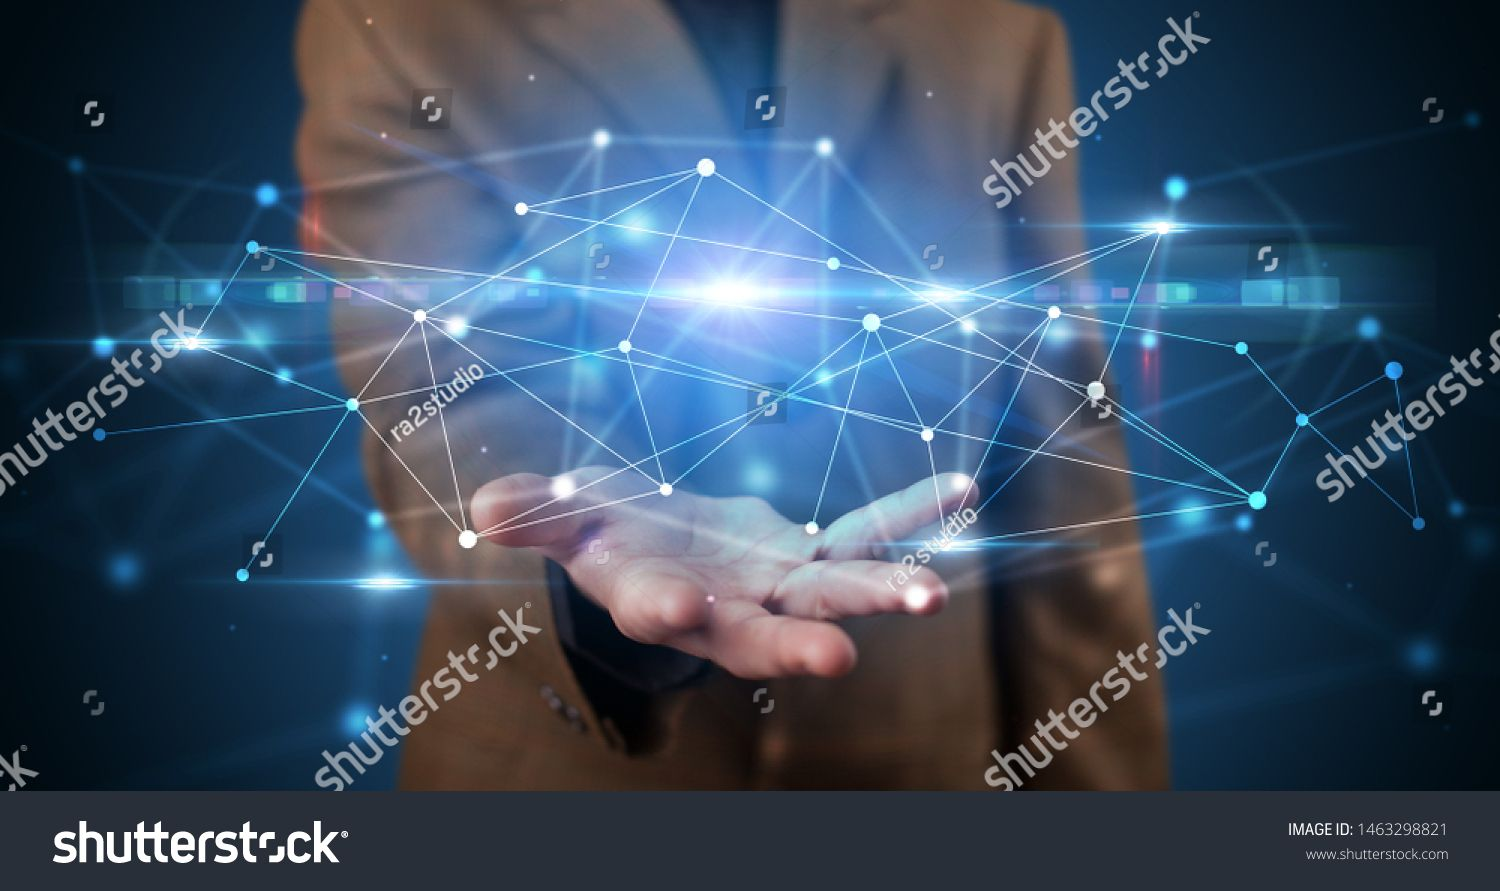 Handsome person holding hologram screen displaying modern